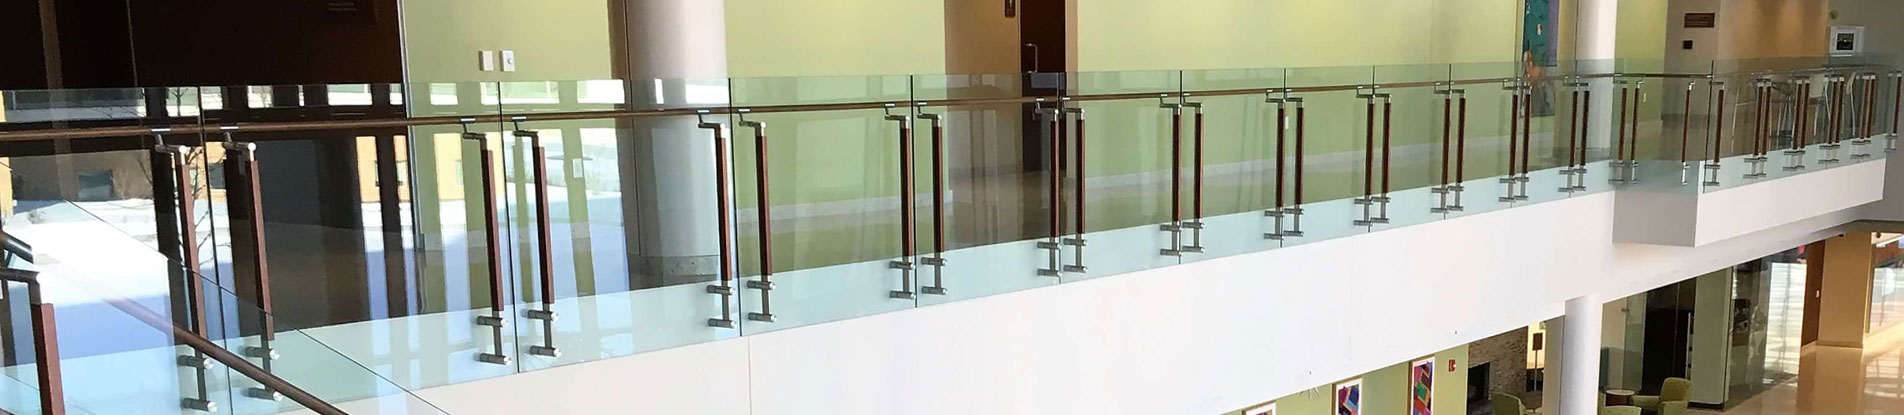 HDI's Kubit railing system with Oak cladding is installed at The University of Wisconsin School of Nursing.